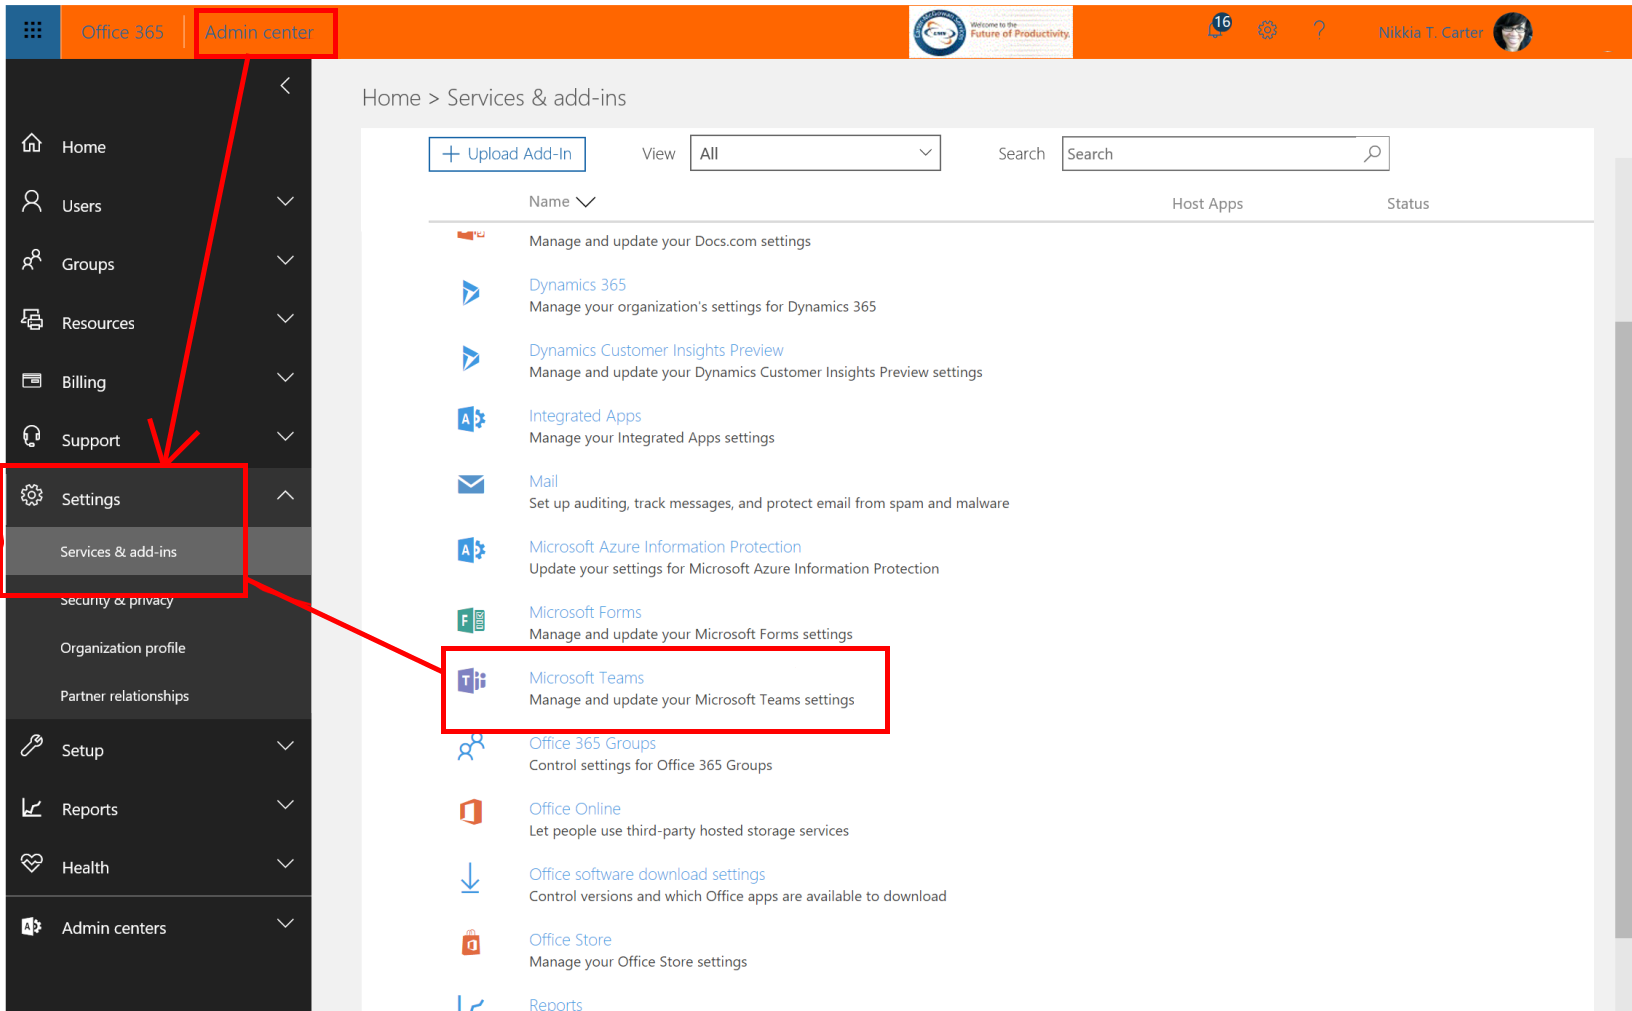 Administering Office 365 Groups via Office 365 Groups